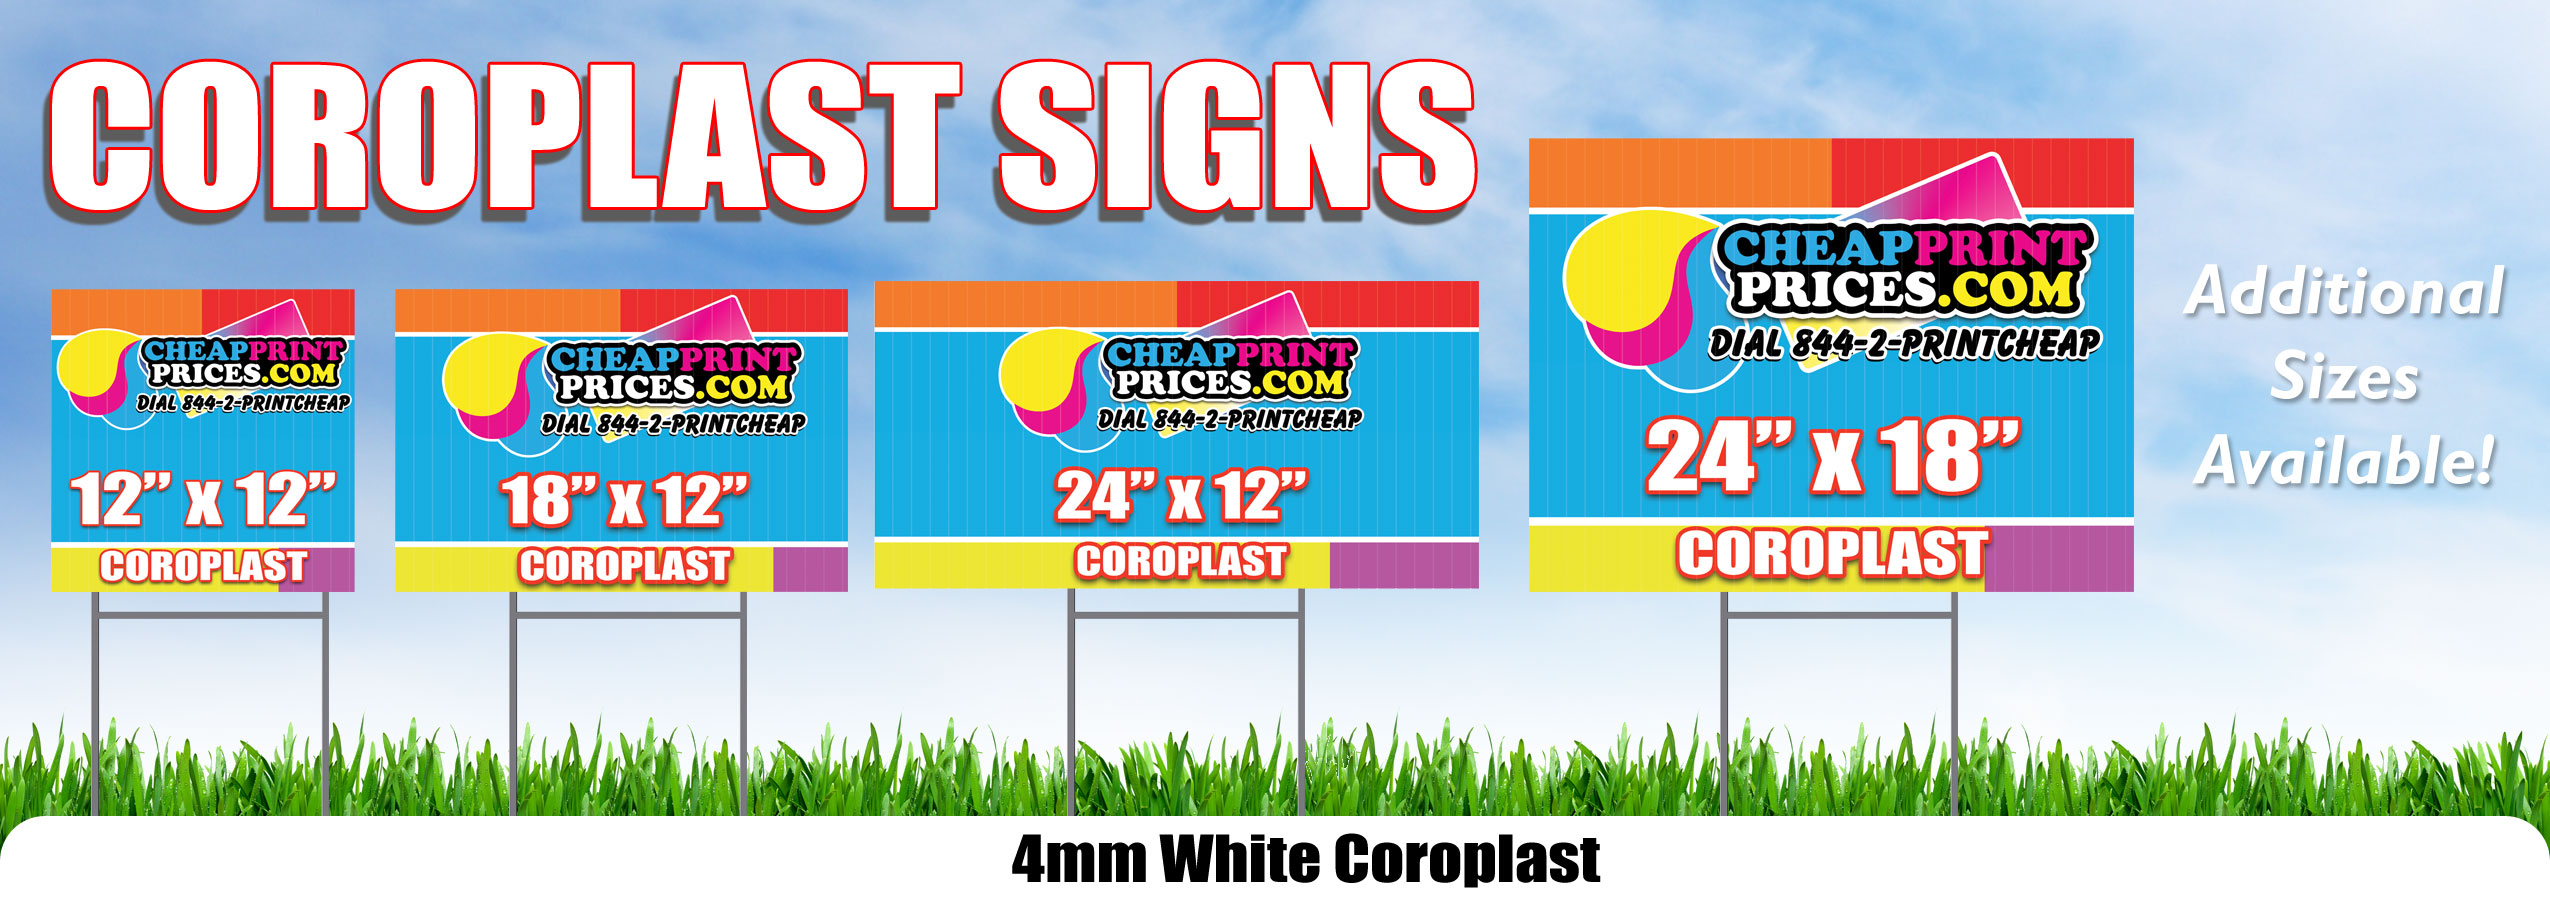 cheap-prices-on-full-color-coroplast-plastic-signs